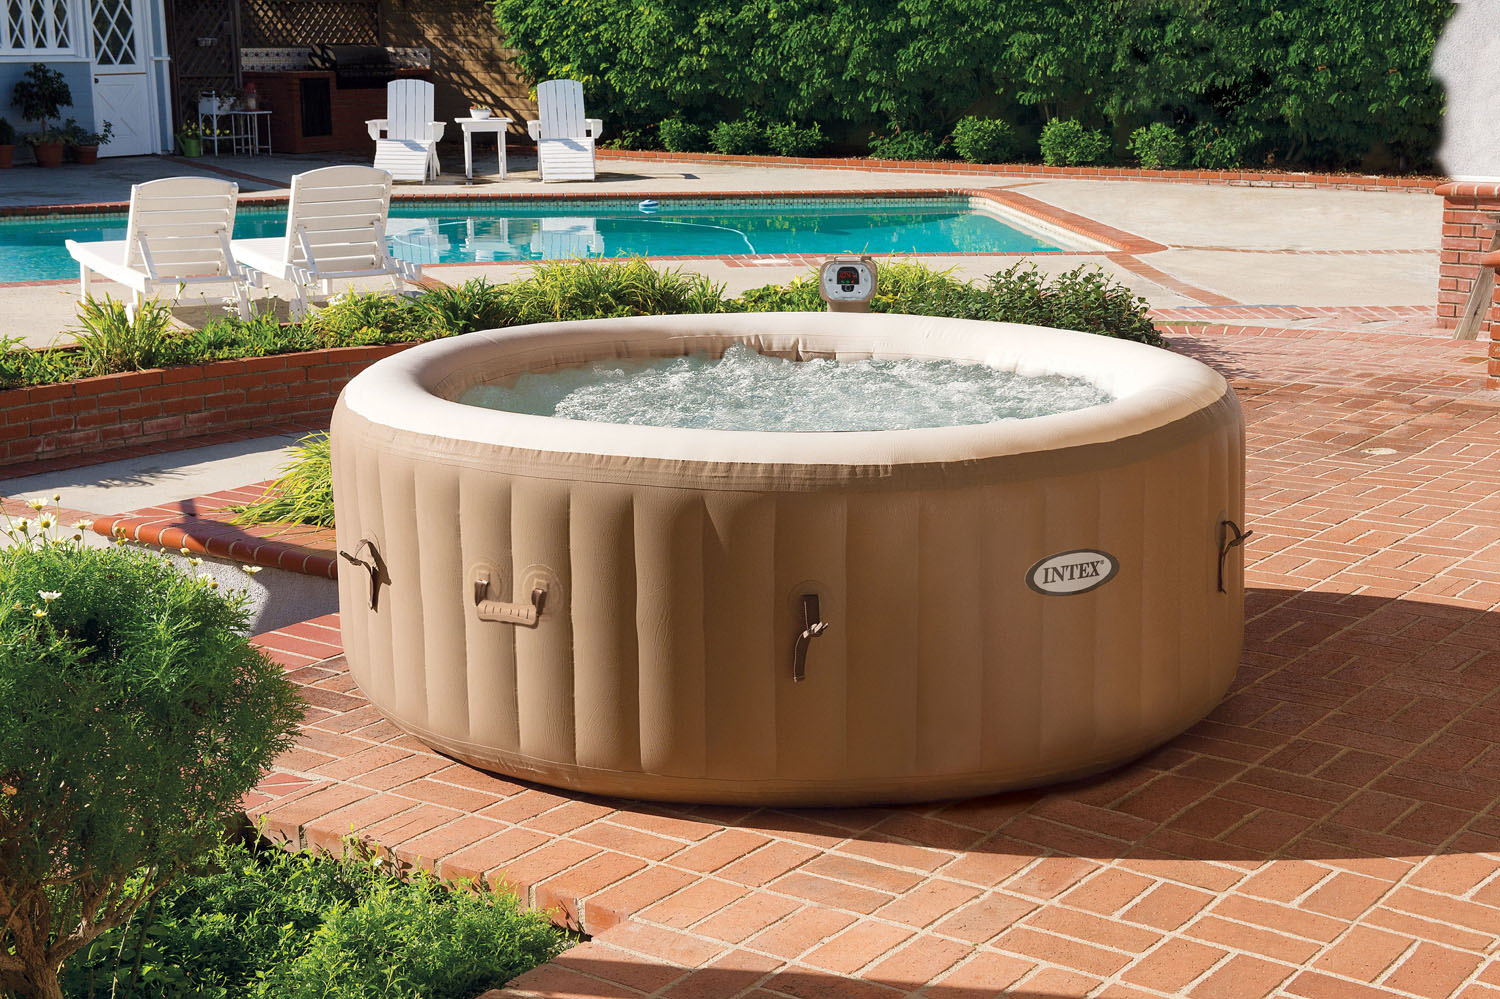 28403E�Intex Hot Tub PureSpa Bubble Therapy Inflatable Spa